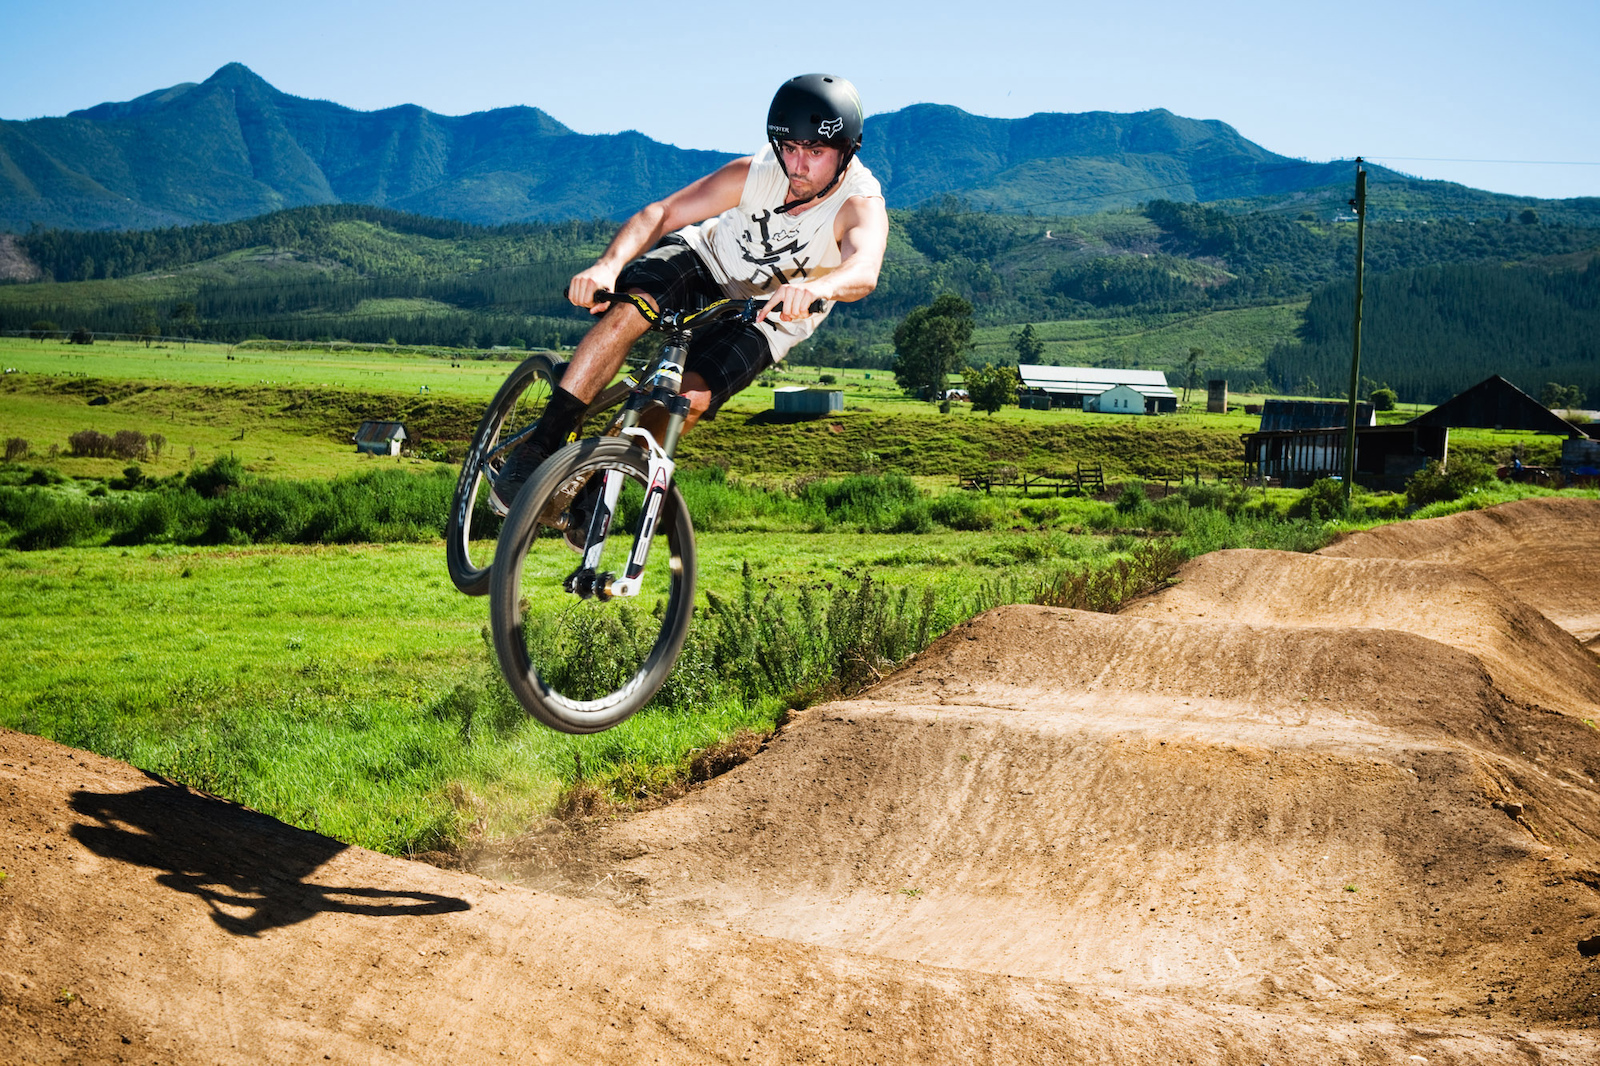 Every morning we rode down the newly renamed Milkshake Trail to the Garden Route Trail Park Cafe for breakfast and at least one Milkshake. Then we would ride the awesome pumptrack before heading up to continue work on the beast.